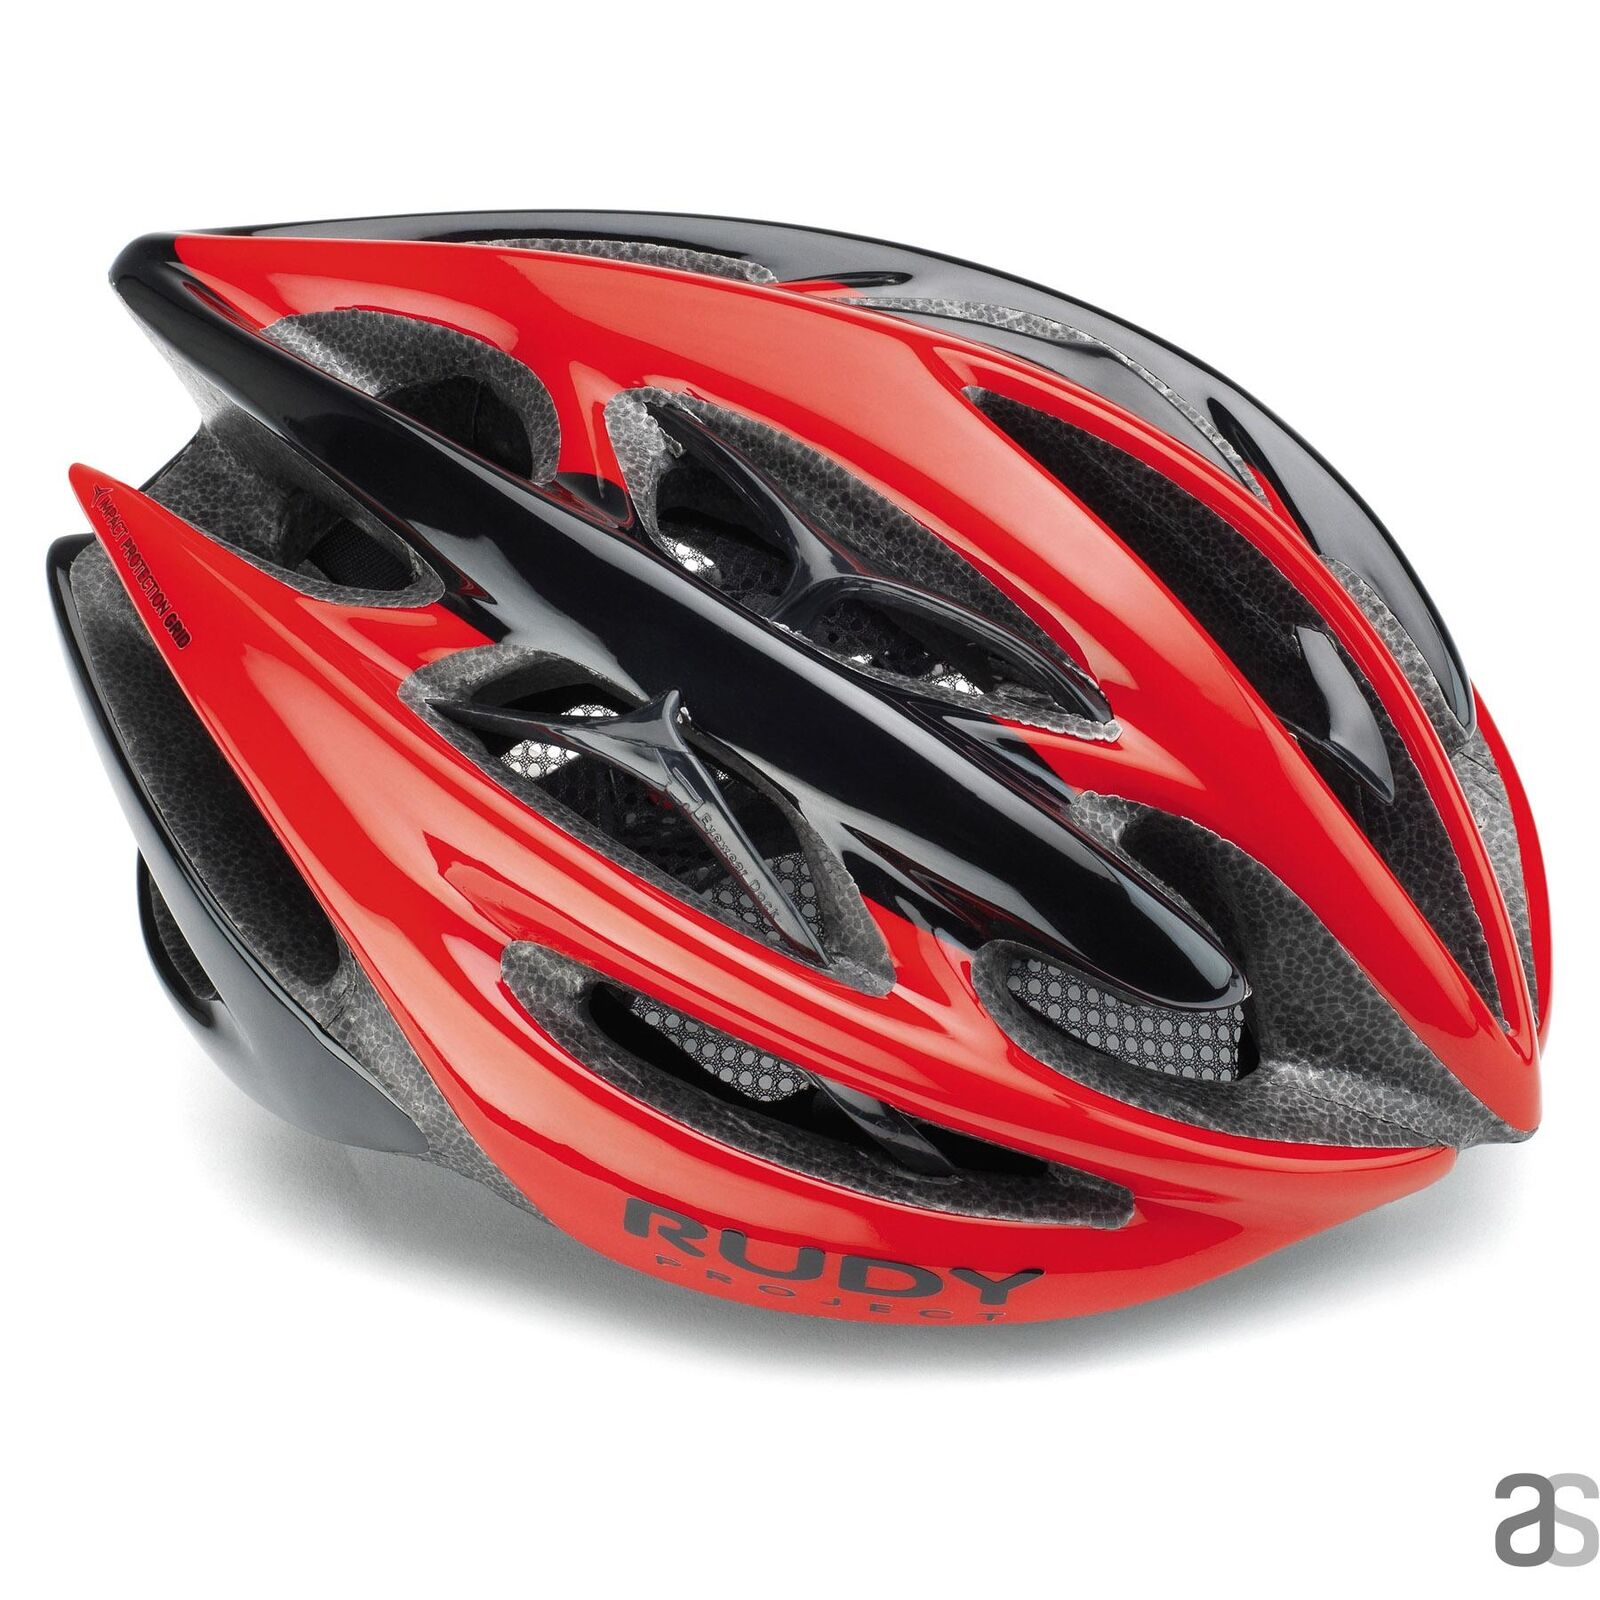 RUDY PROJECT STERLING+ CASQUE  CYCLISME HL67002  the lowest price